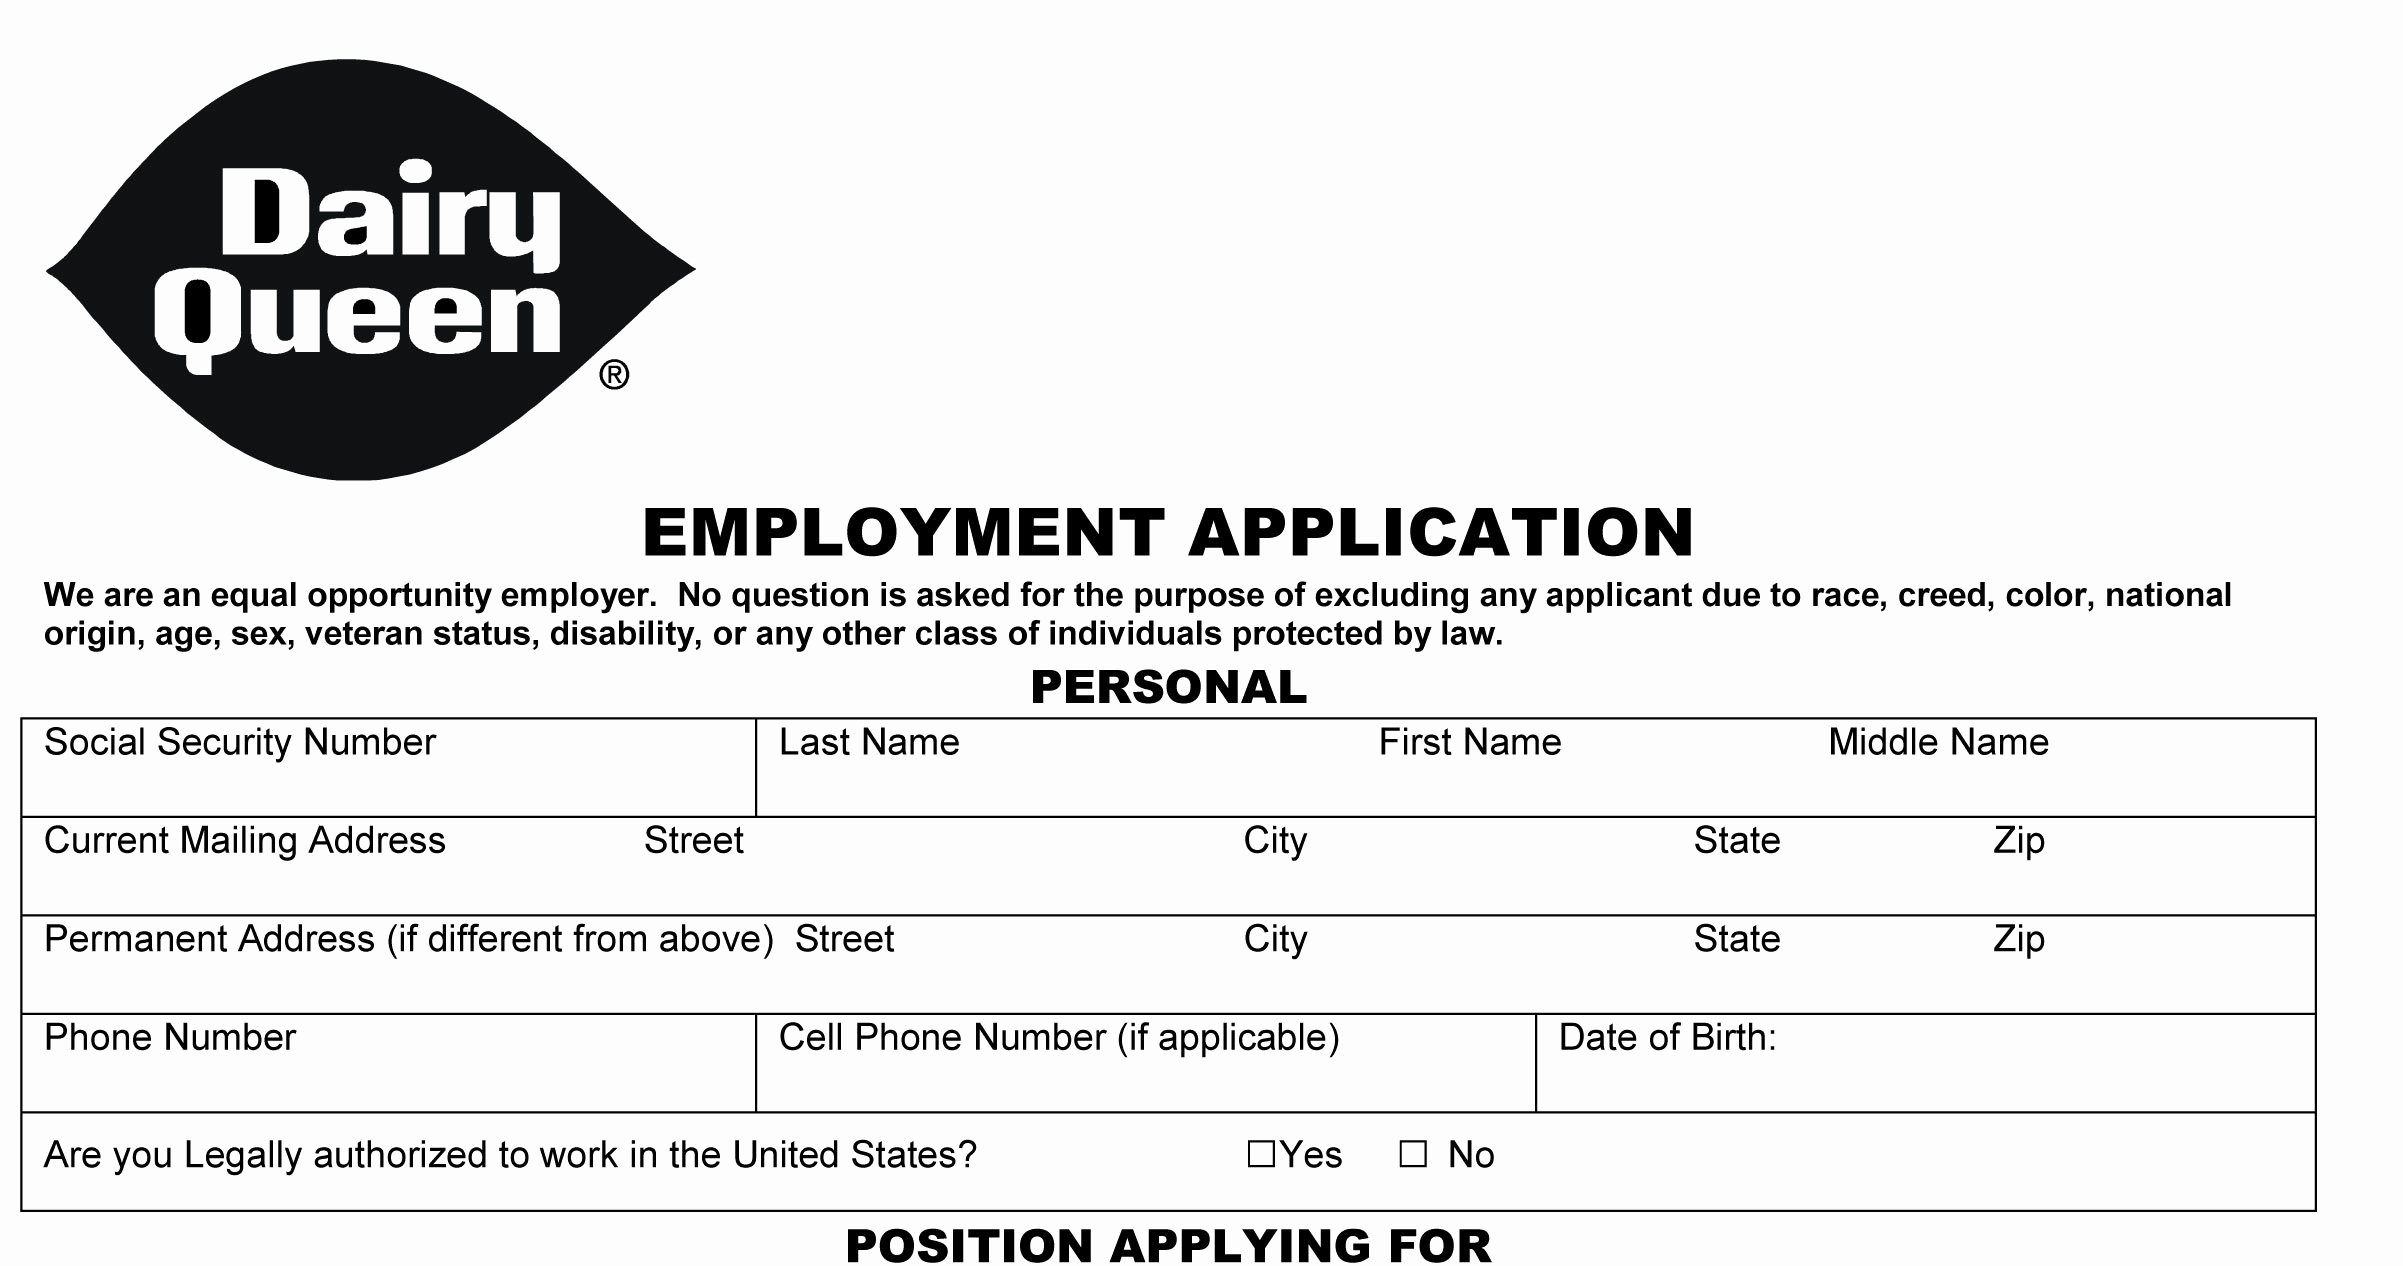 Online Printable Job Applications Awesome Dairy Queen Job Application Printable Employment Pdf forms